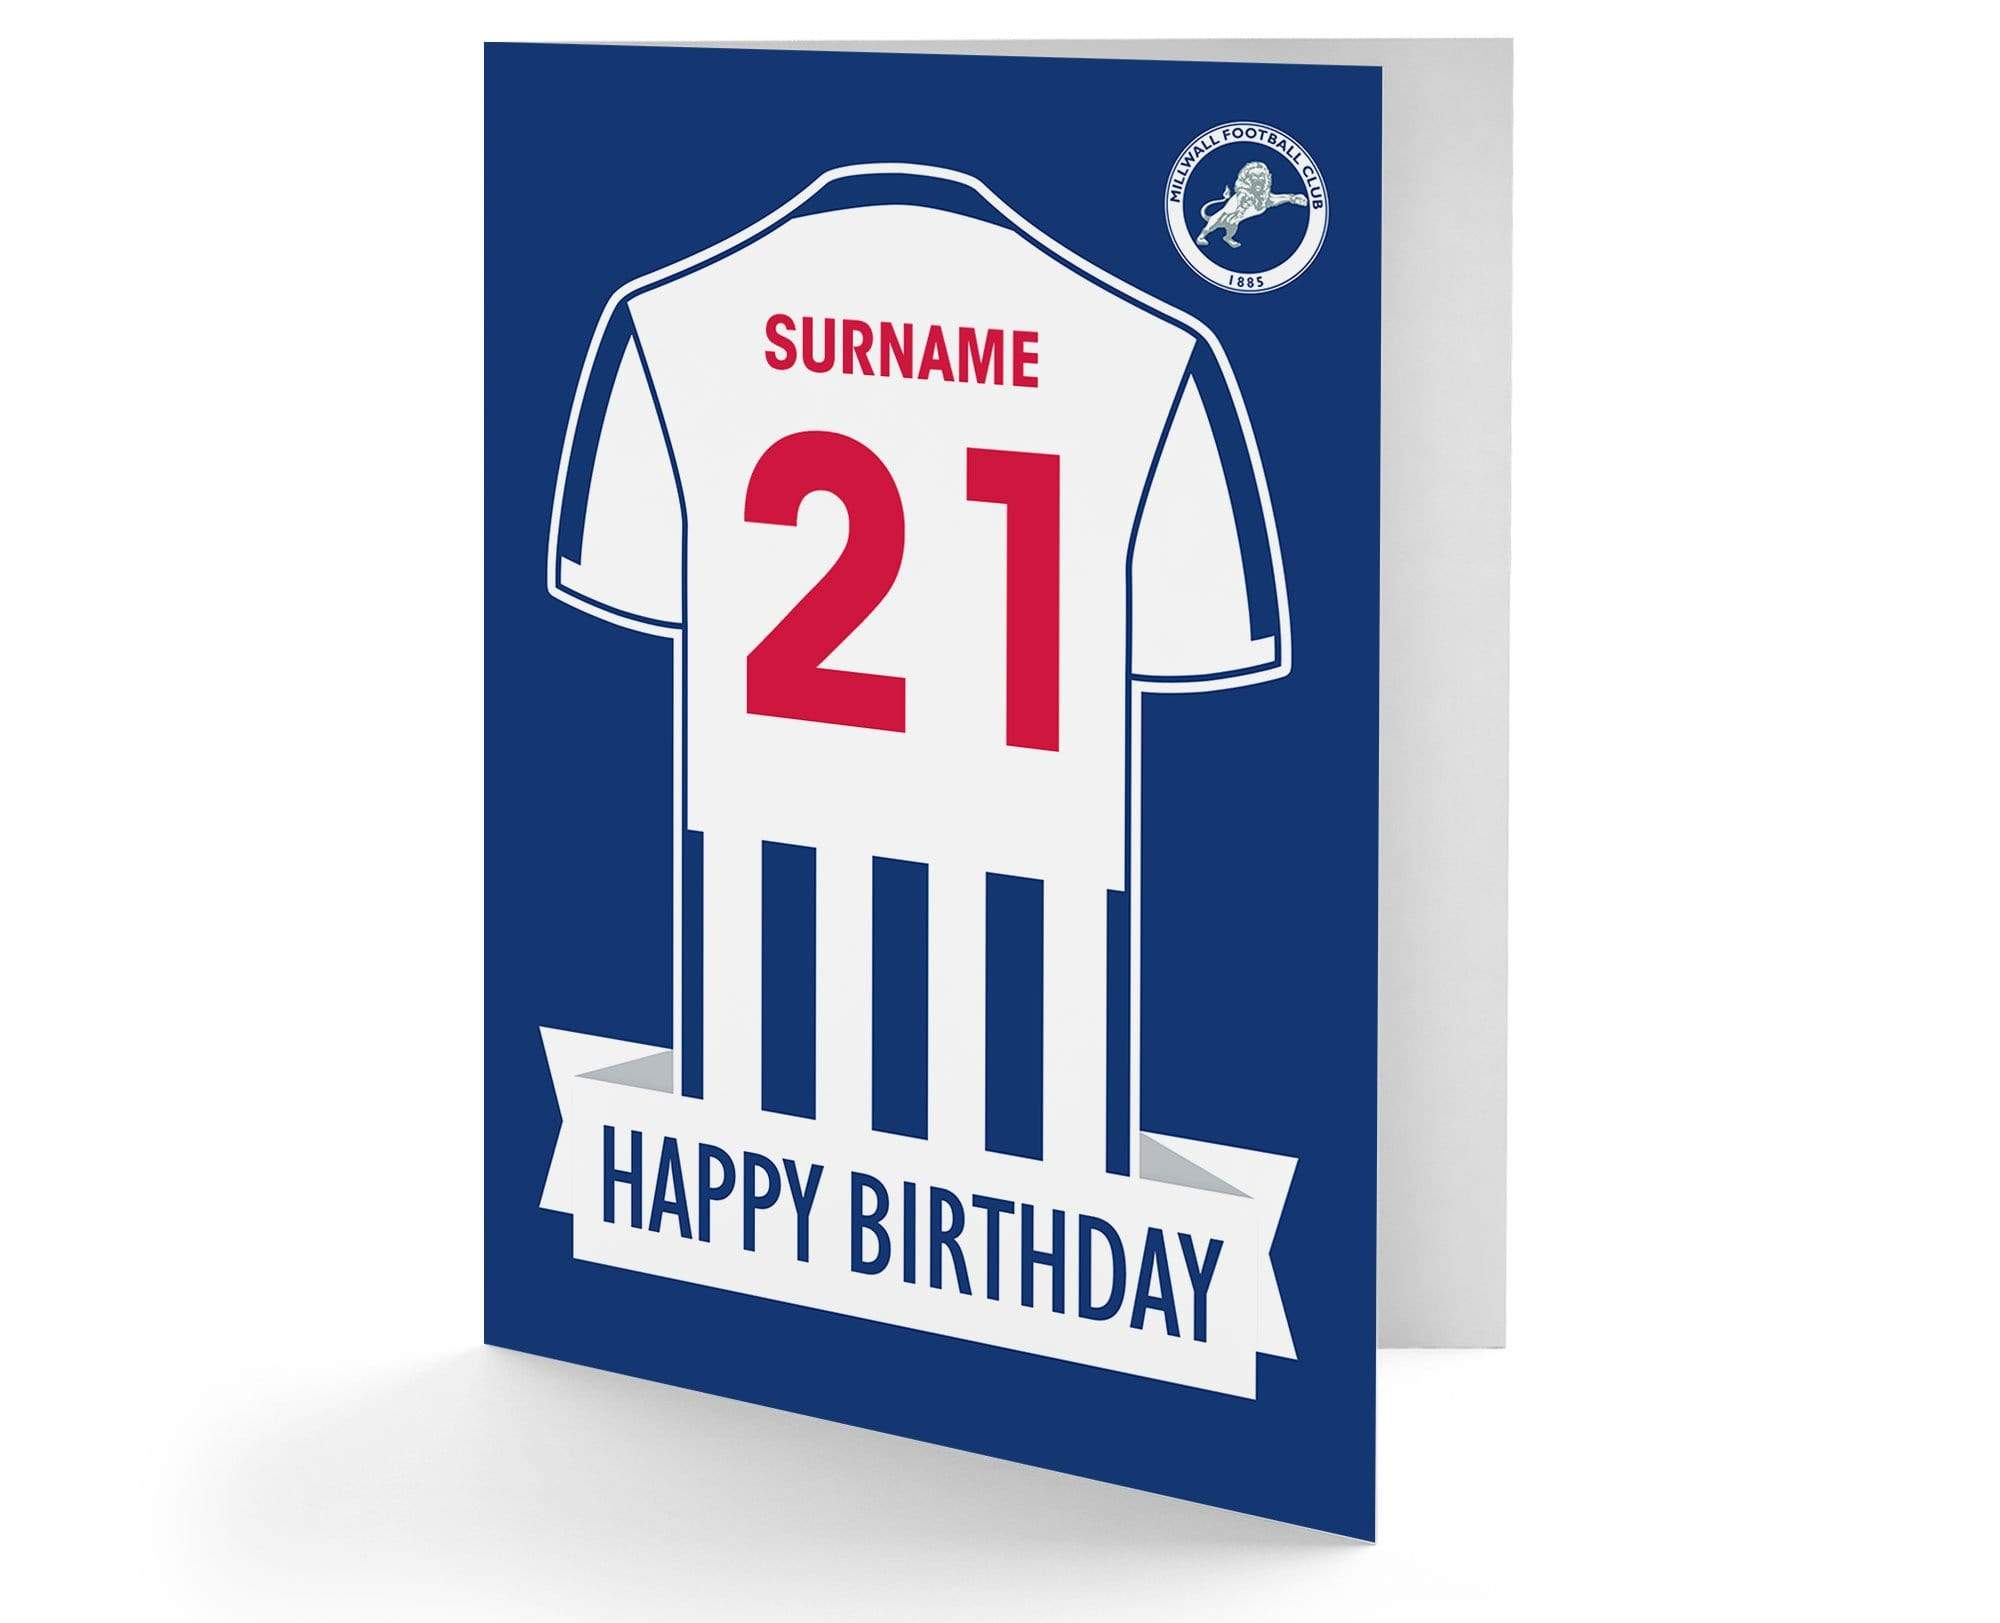 Personalised Millwall Birthday Card, Gift Giving by Glamorous Gifts